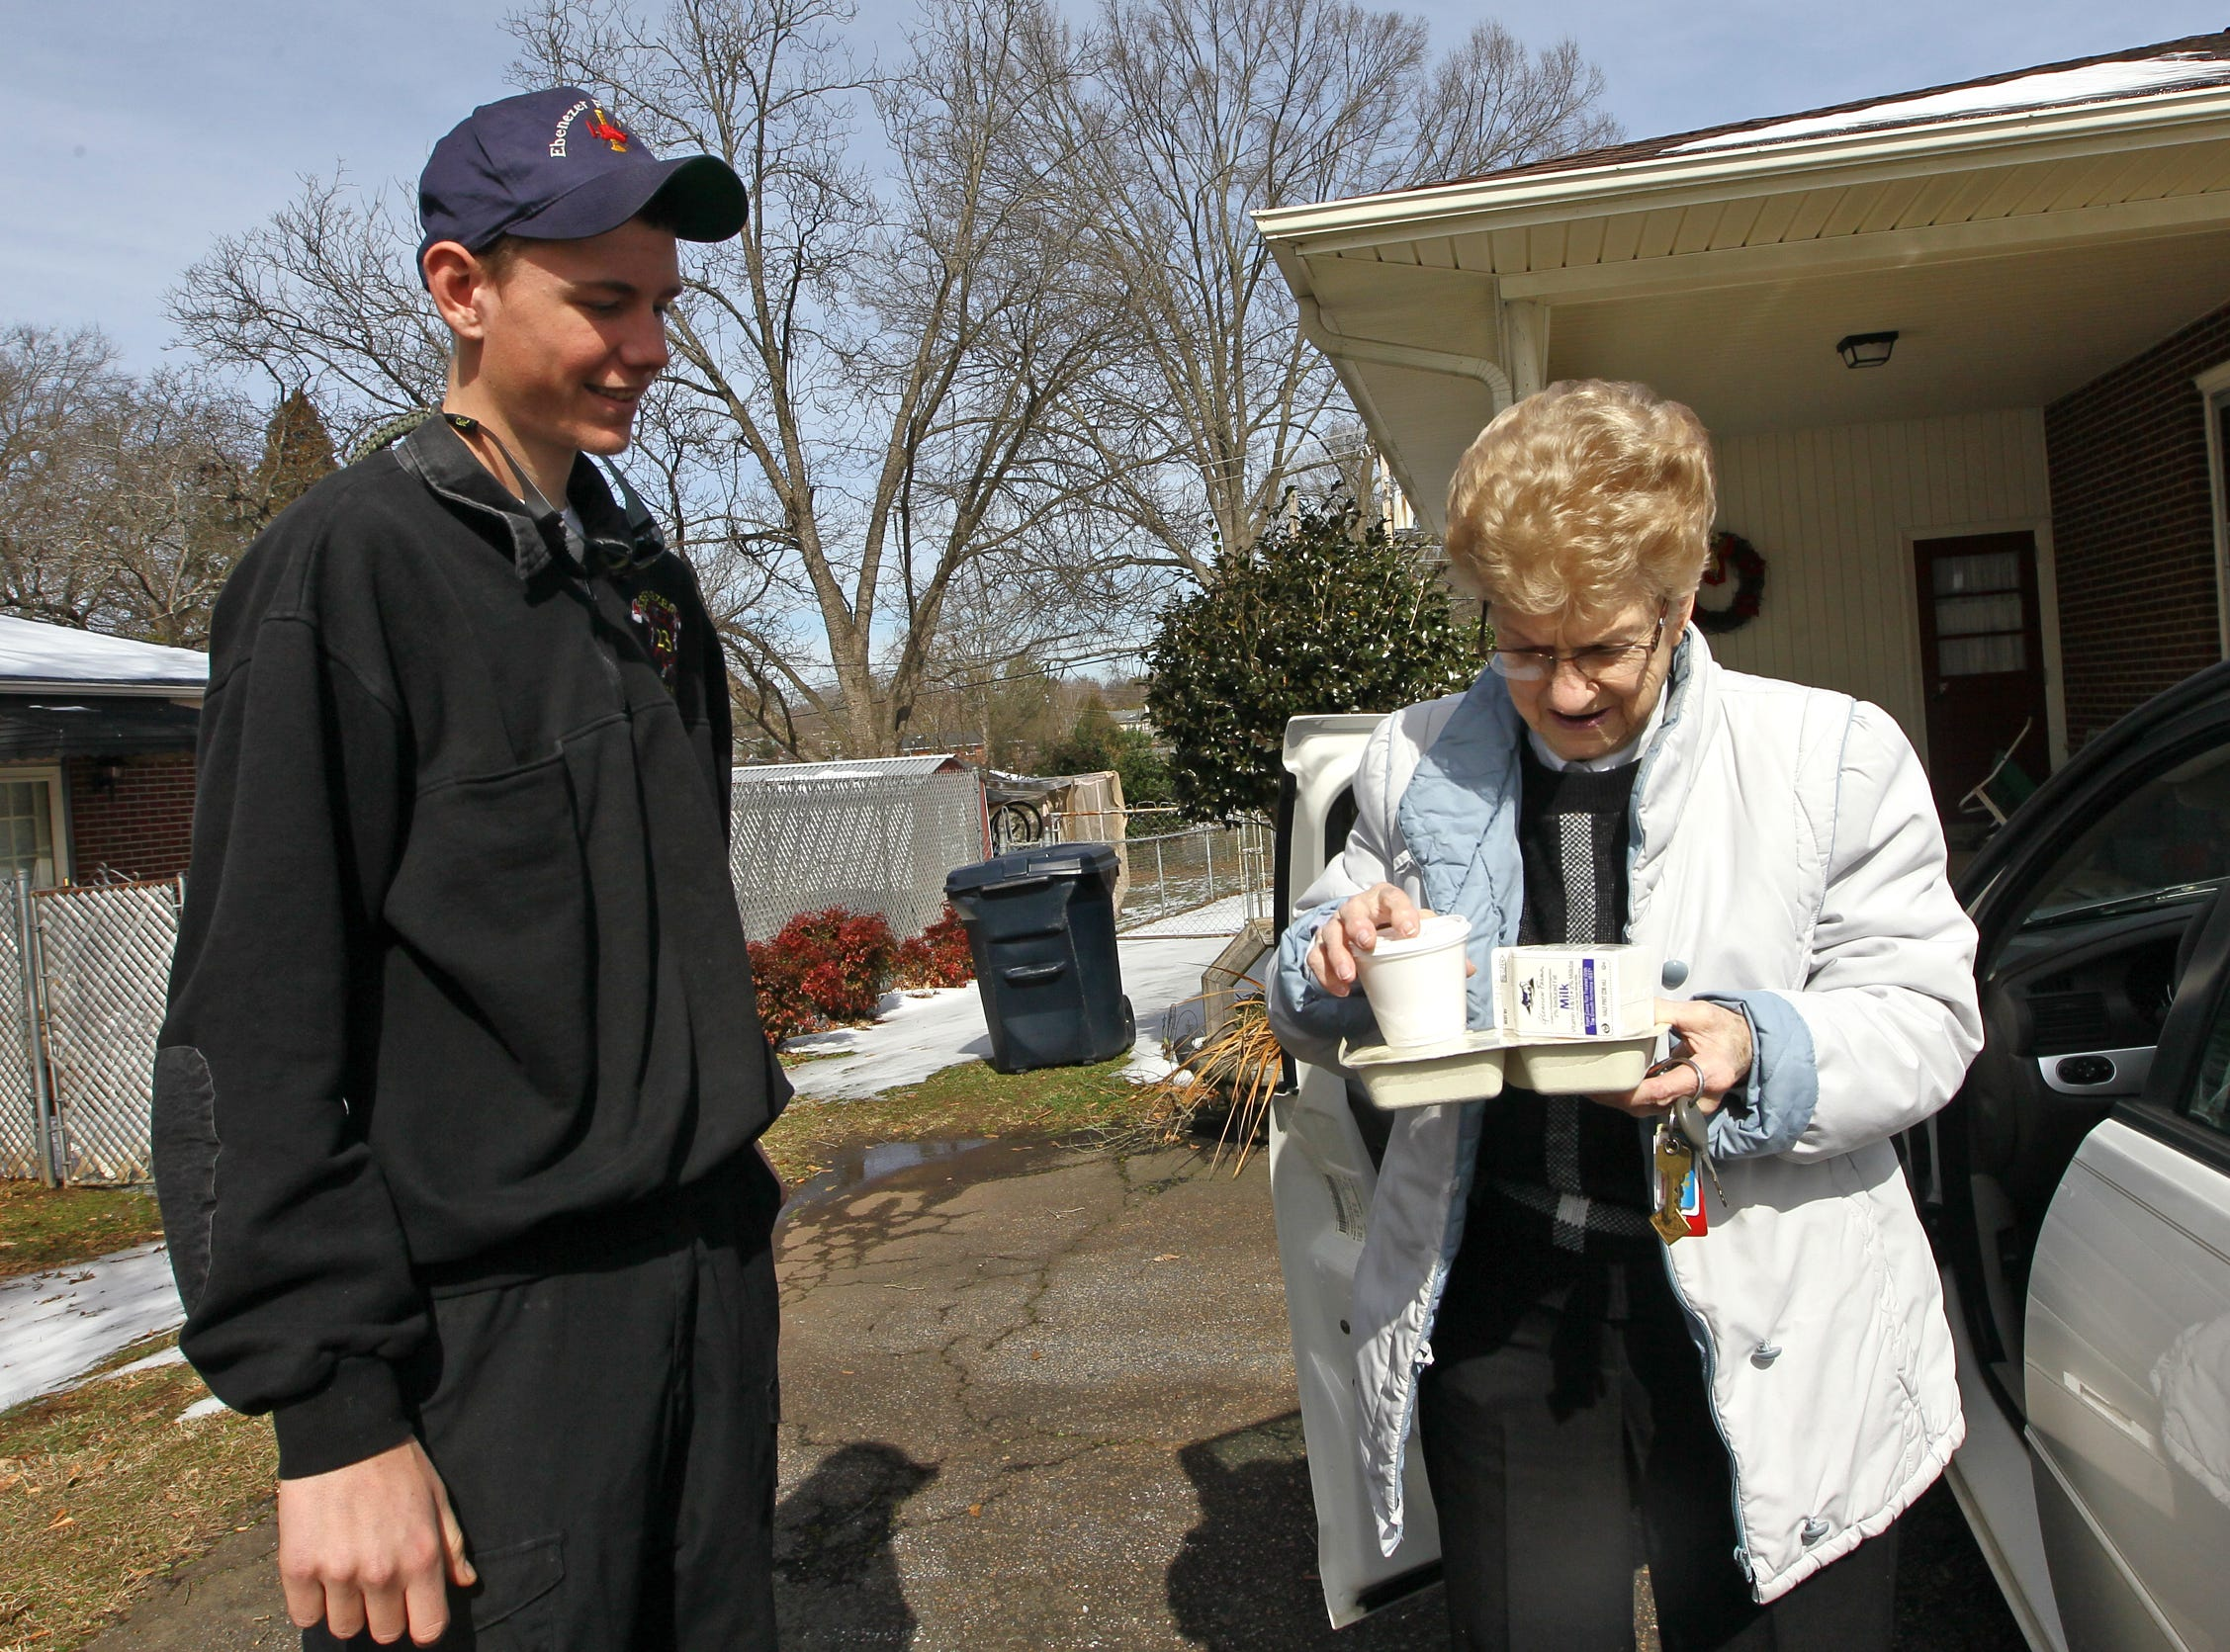 McKensey Ashley, left, of Anderson County EMS delivers a hot meal to J.W. McAlister in Anderson. Anderson County Meals on Wheels had help from Anderson County workers in delivering meals in four-wheel drive vehicles on roads with snow and ice in 2014.